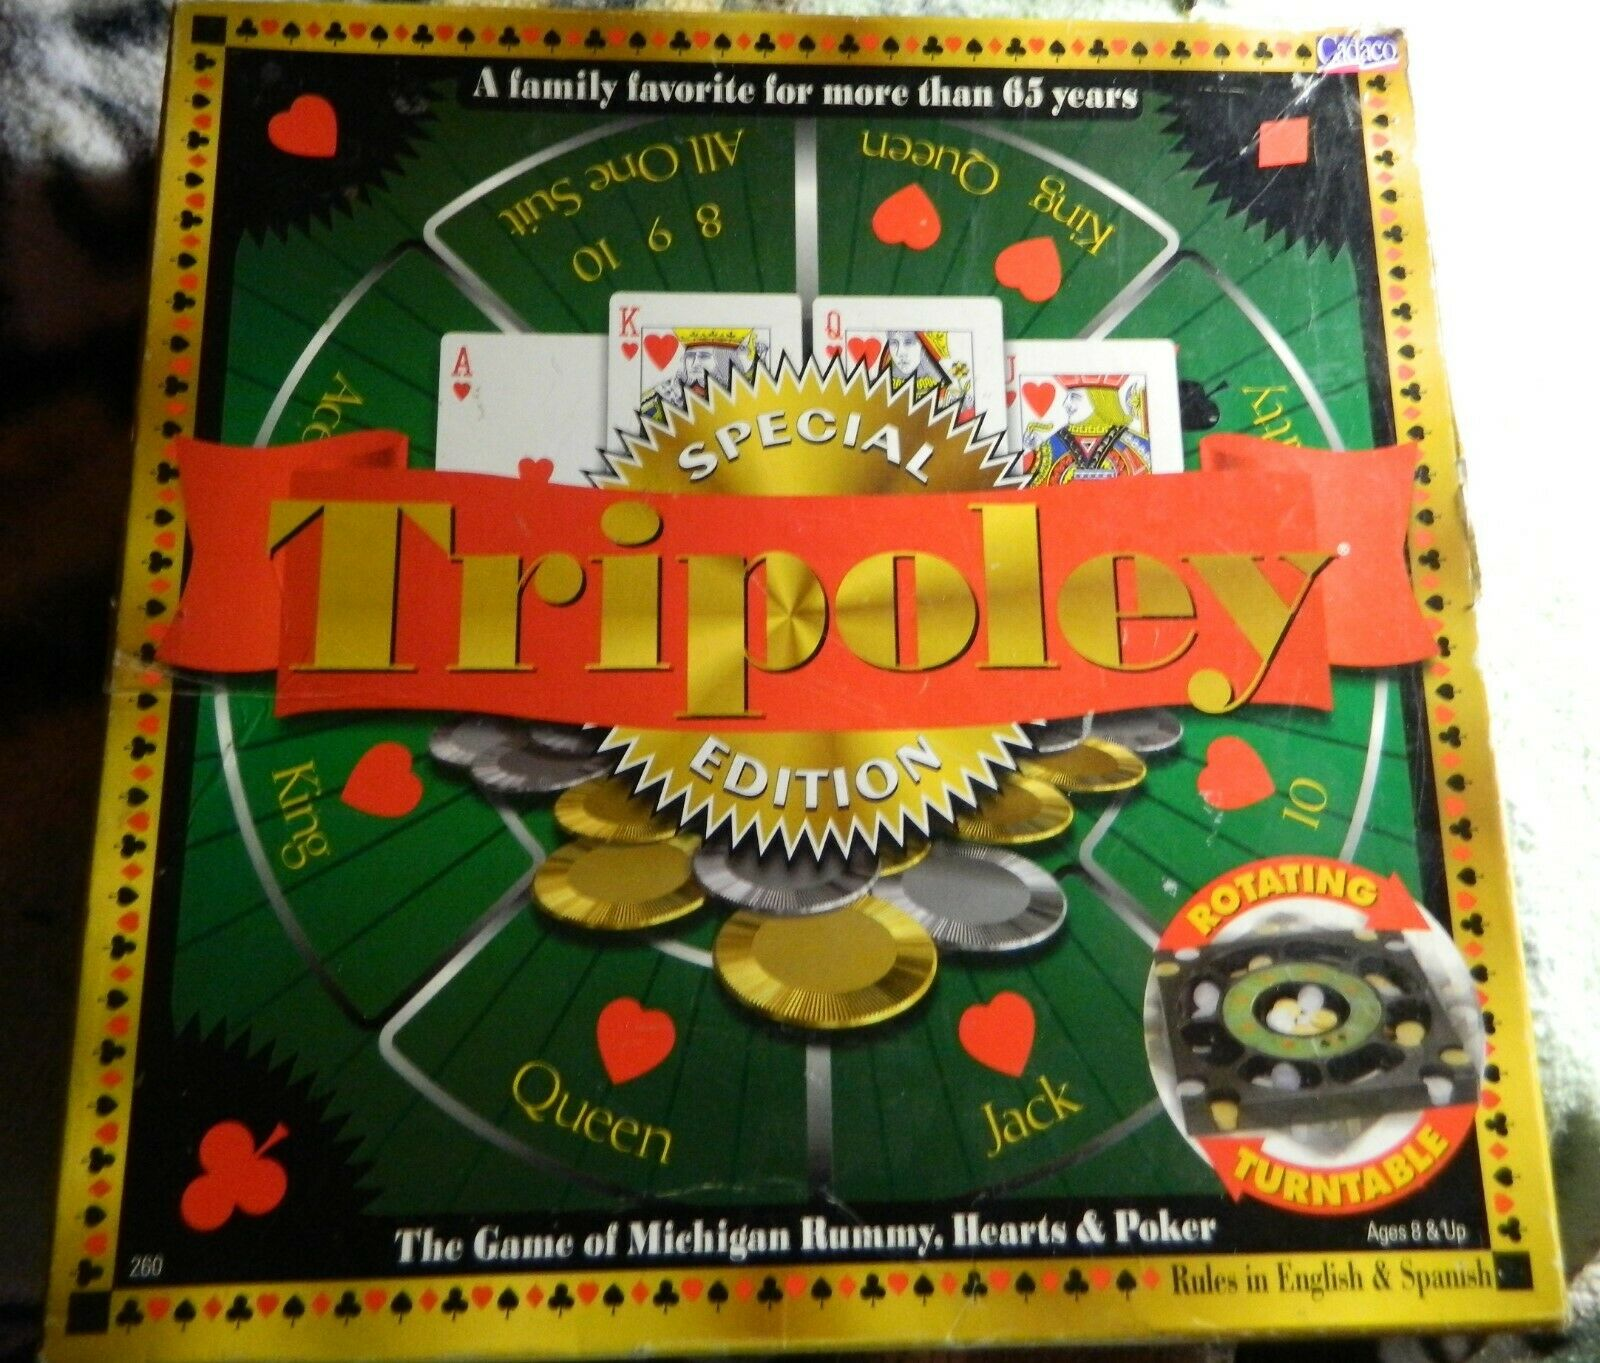 Tripoley Special Edition 2000 Cadaco Board Game redating Turnable-Complete